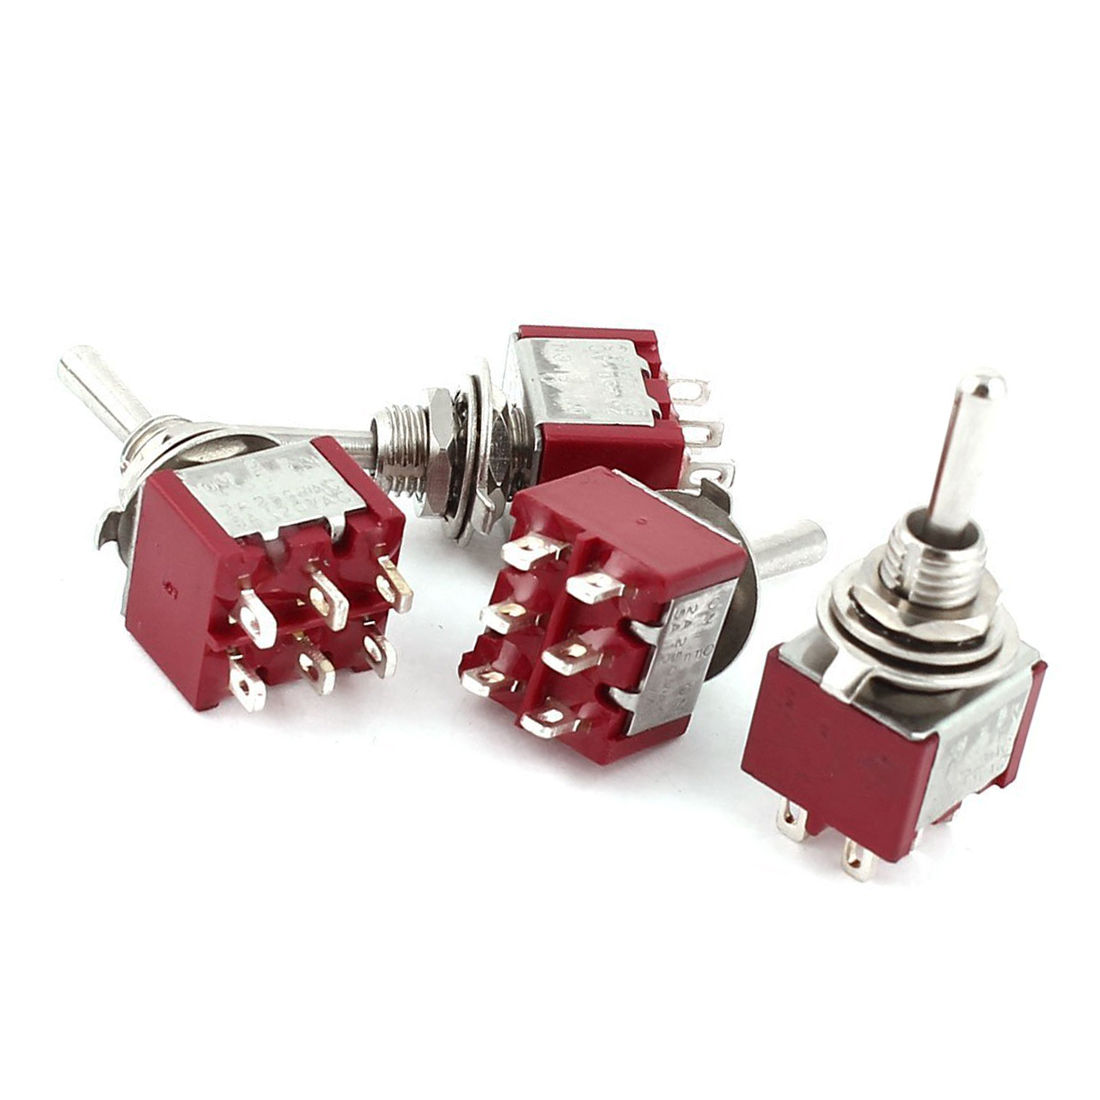 цена на High Quality 4Pcs AC 250V 2A 120V 5A 6 Pin Terminals ON/Off/ON DPDT Toggle Switches